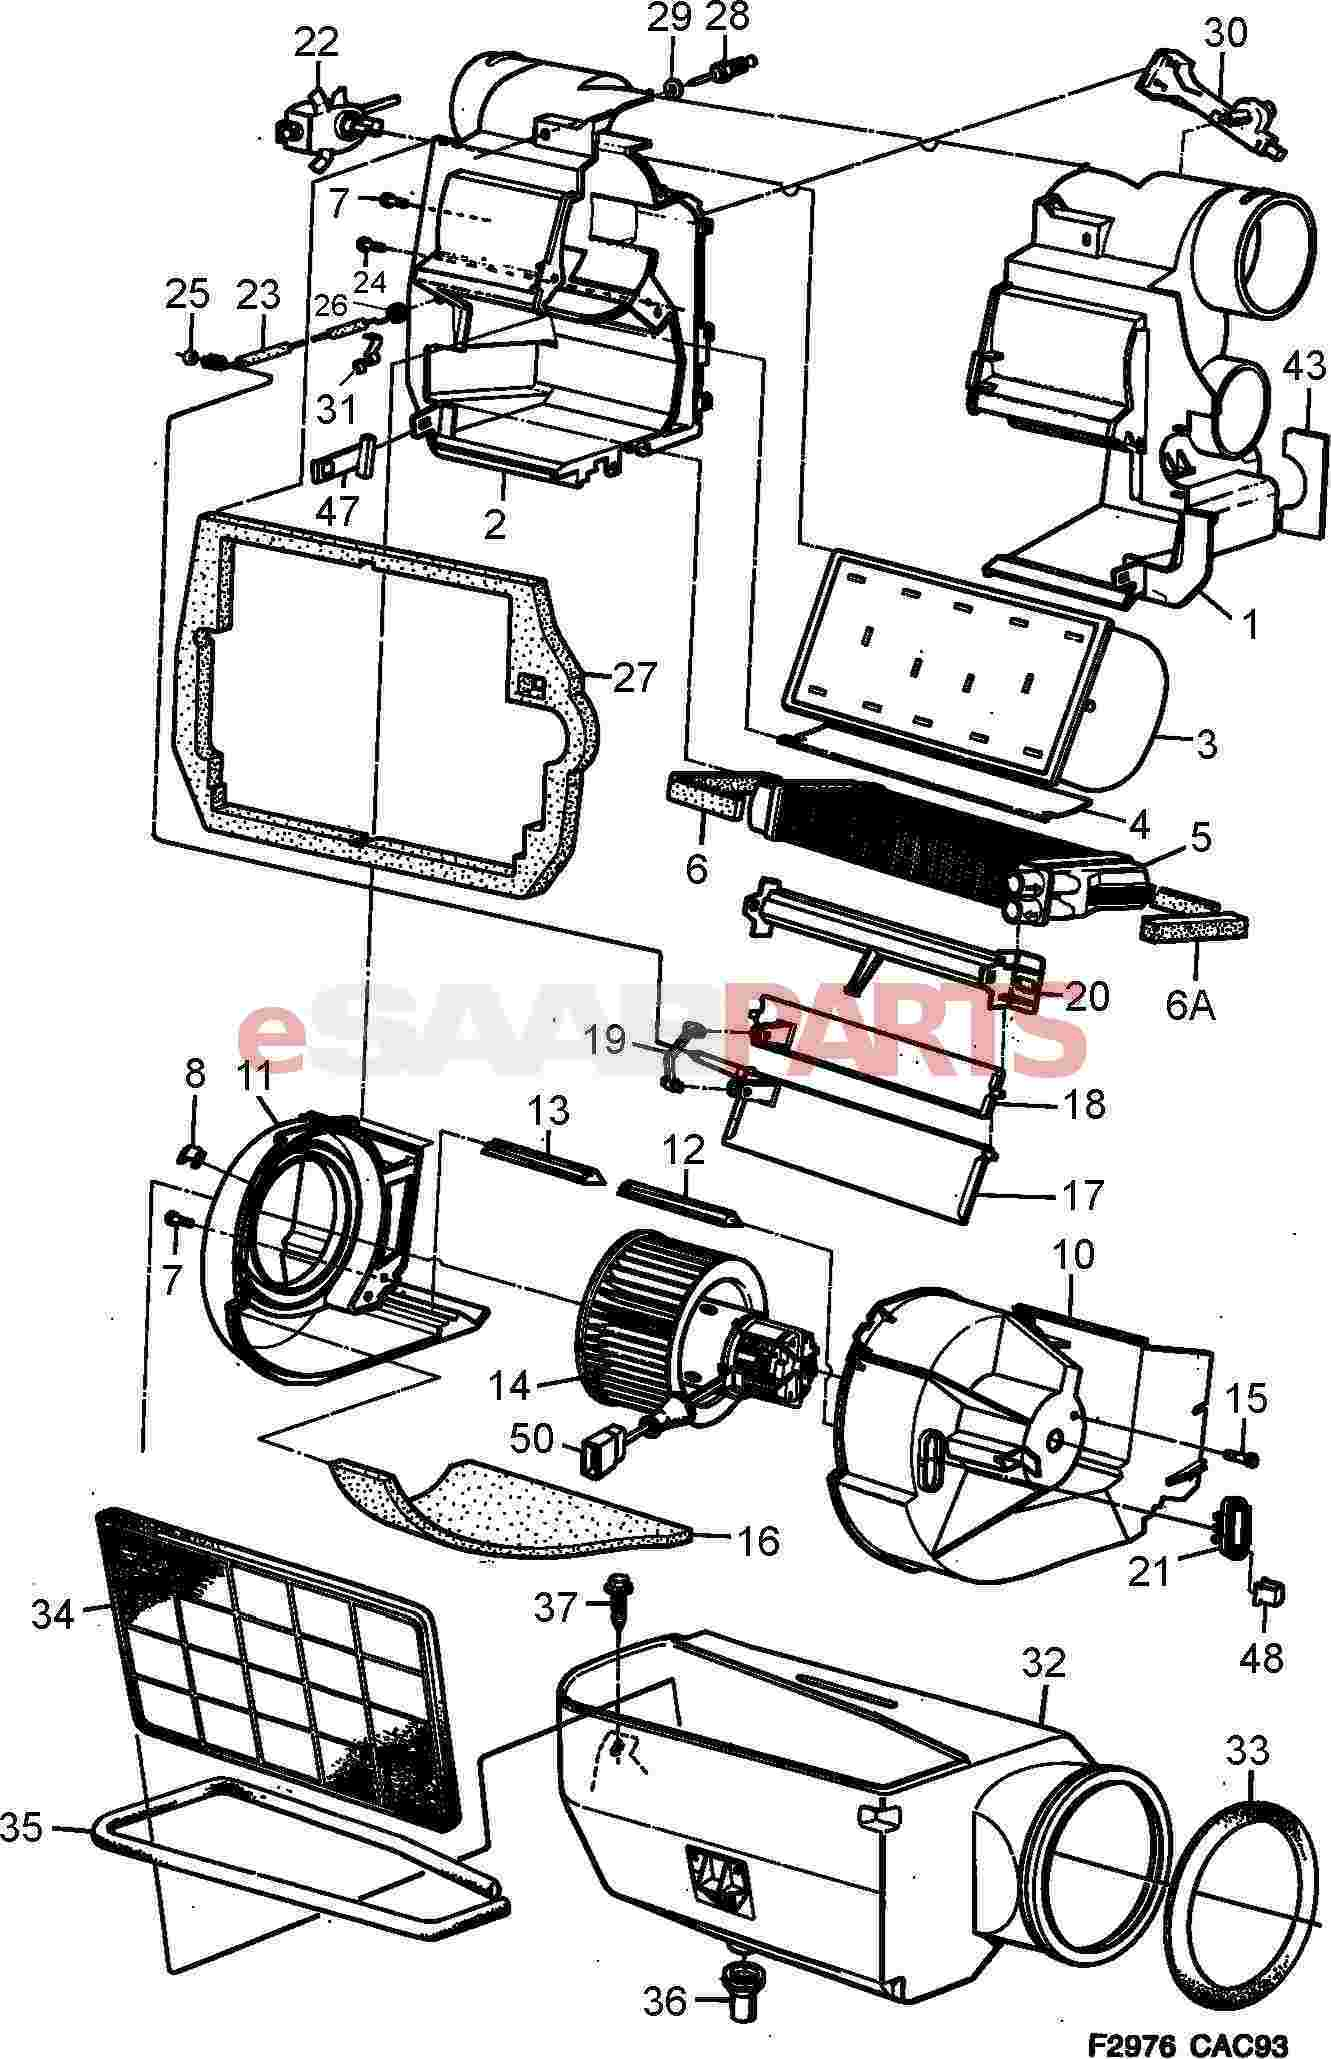 Saab 9000 Heating Air Conditioning Parts Wiring Diagram Ventilation Heat Exchanger Fan Unit Not Acc